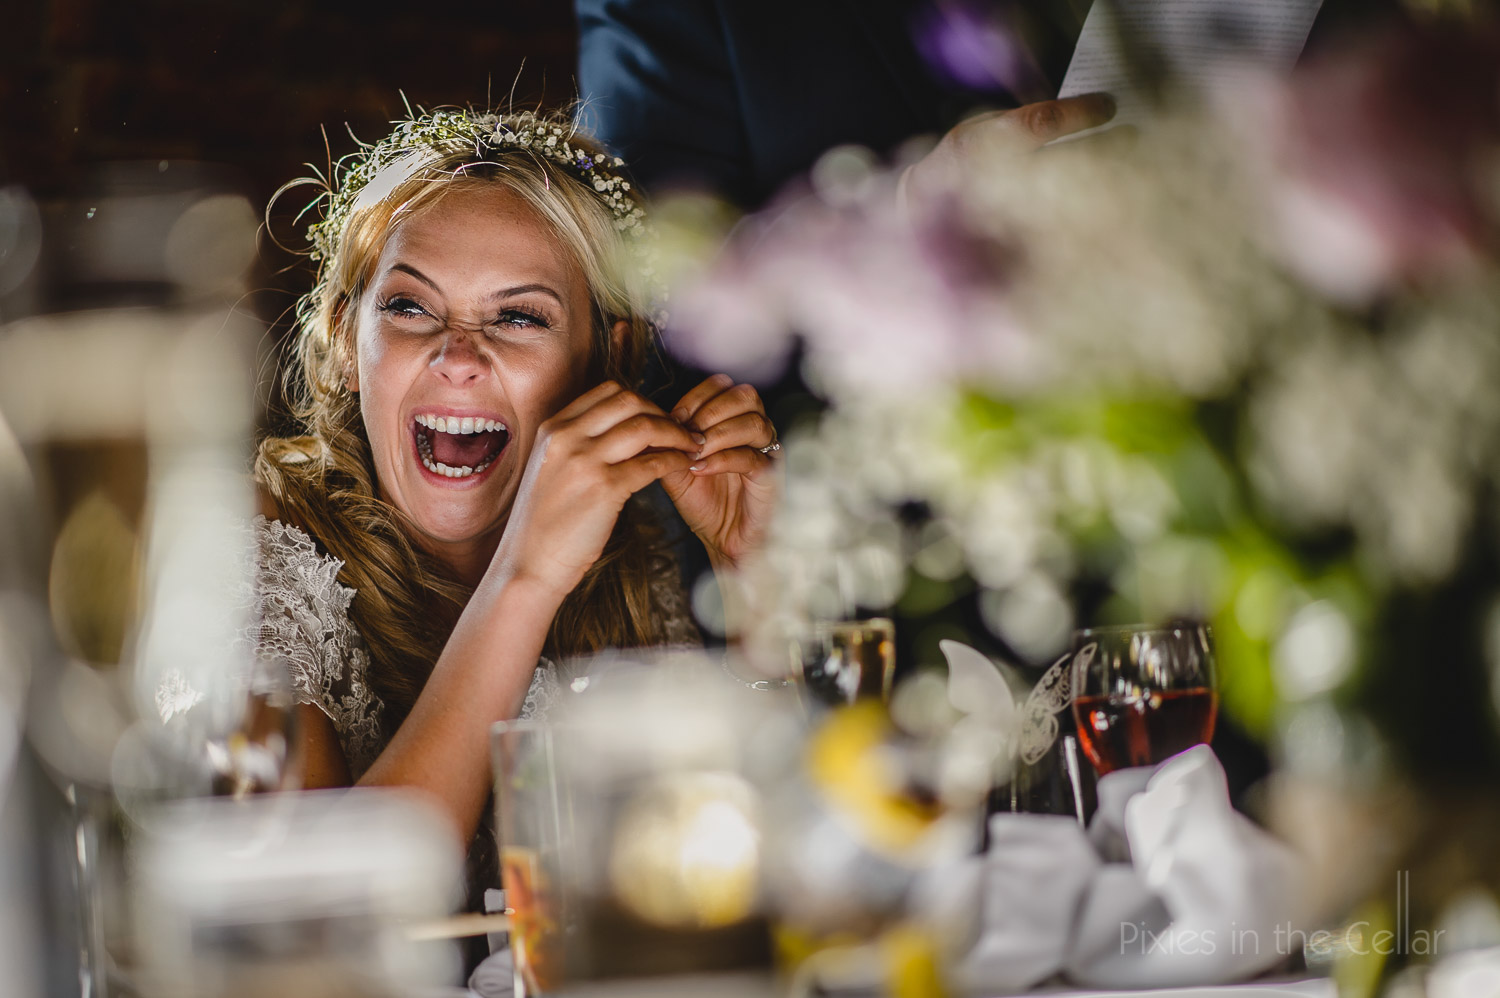 wedding speeches reactions Pixies in the Cellar